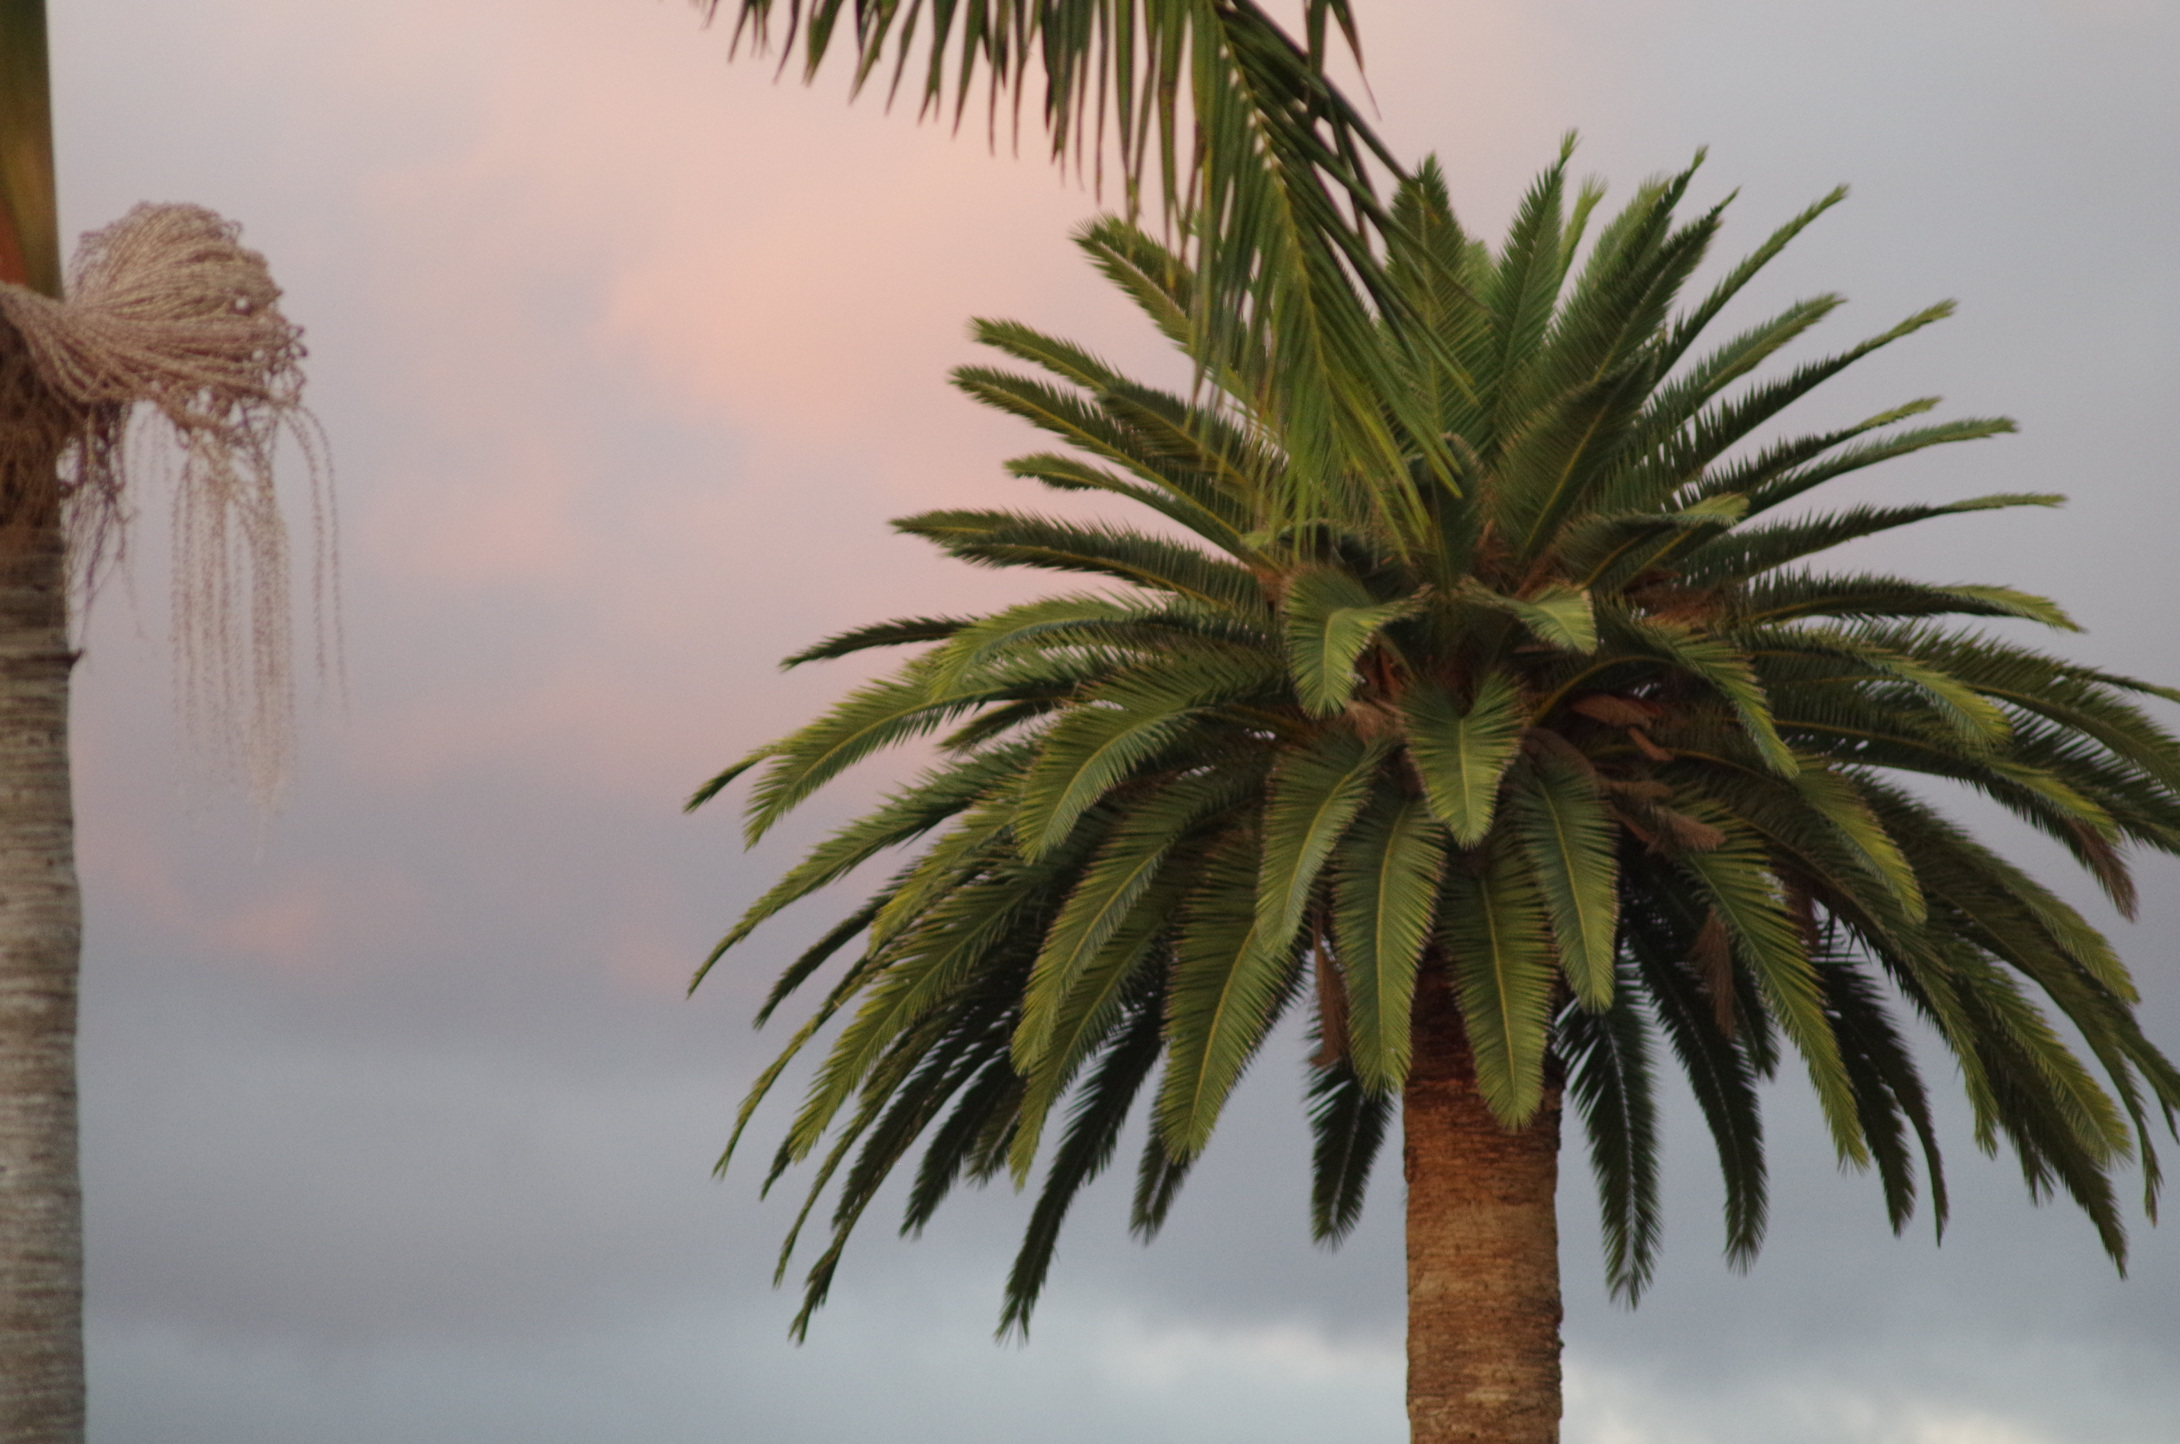 Palm tree at AV.JPG